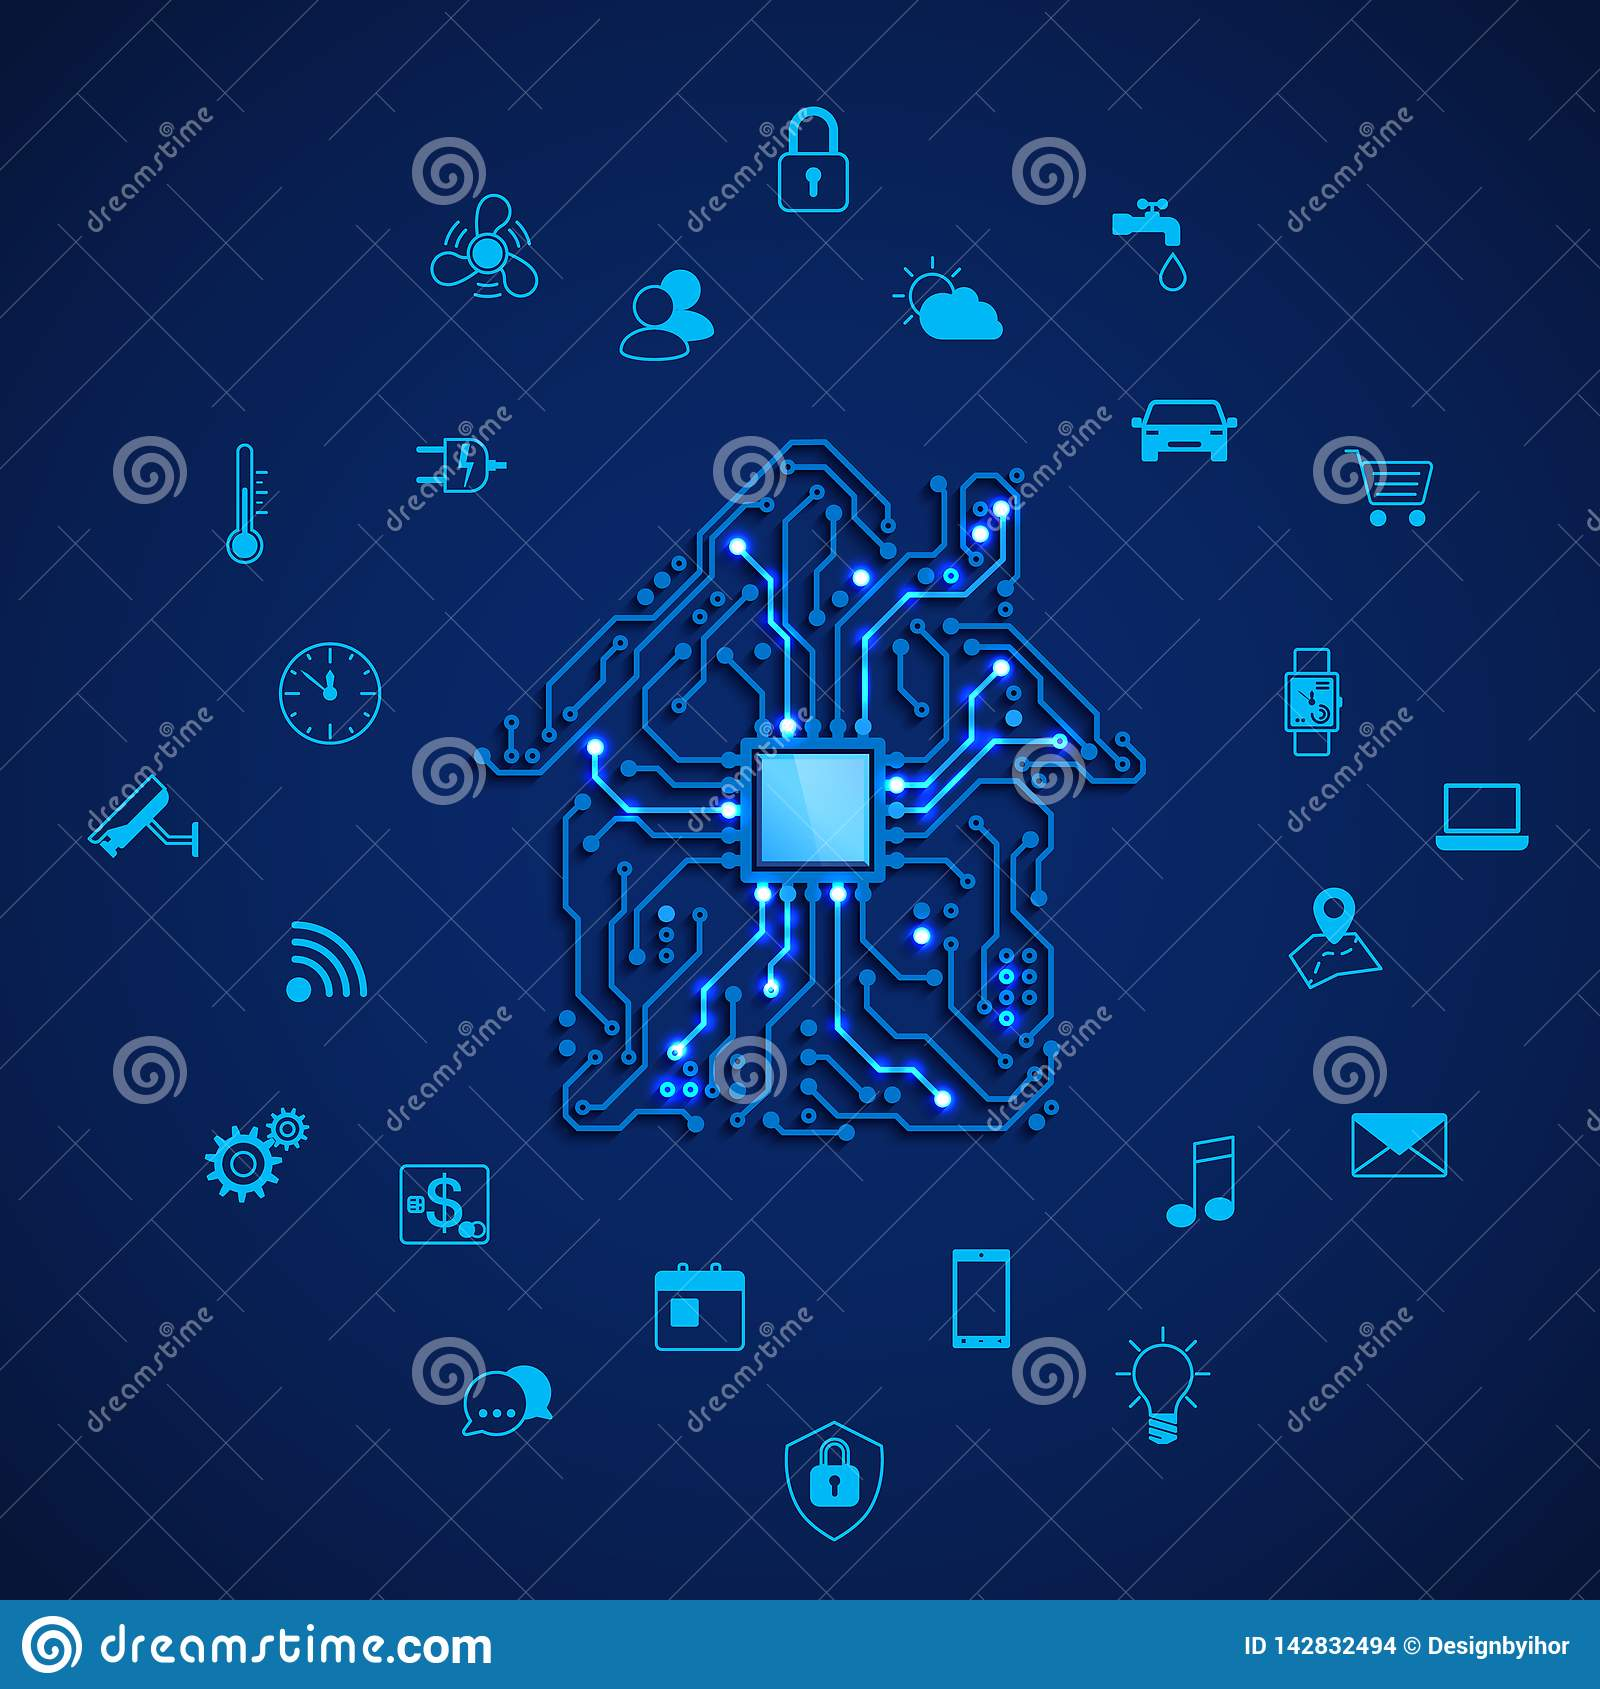 Smart house or IOT concept. Remote control smart house. House circuit and smart home appliance icons. Vector illustration on blue